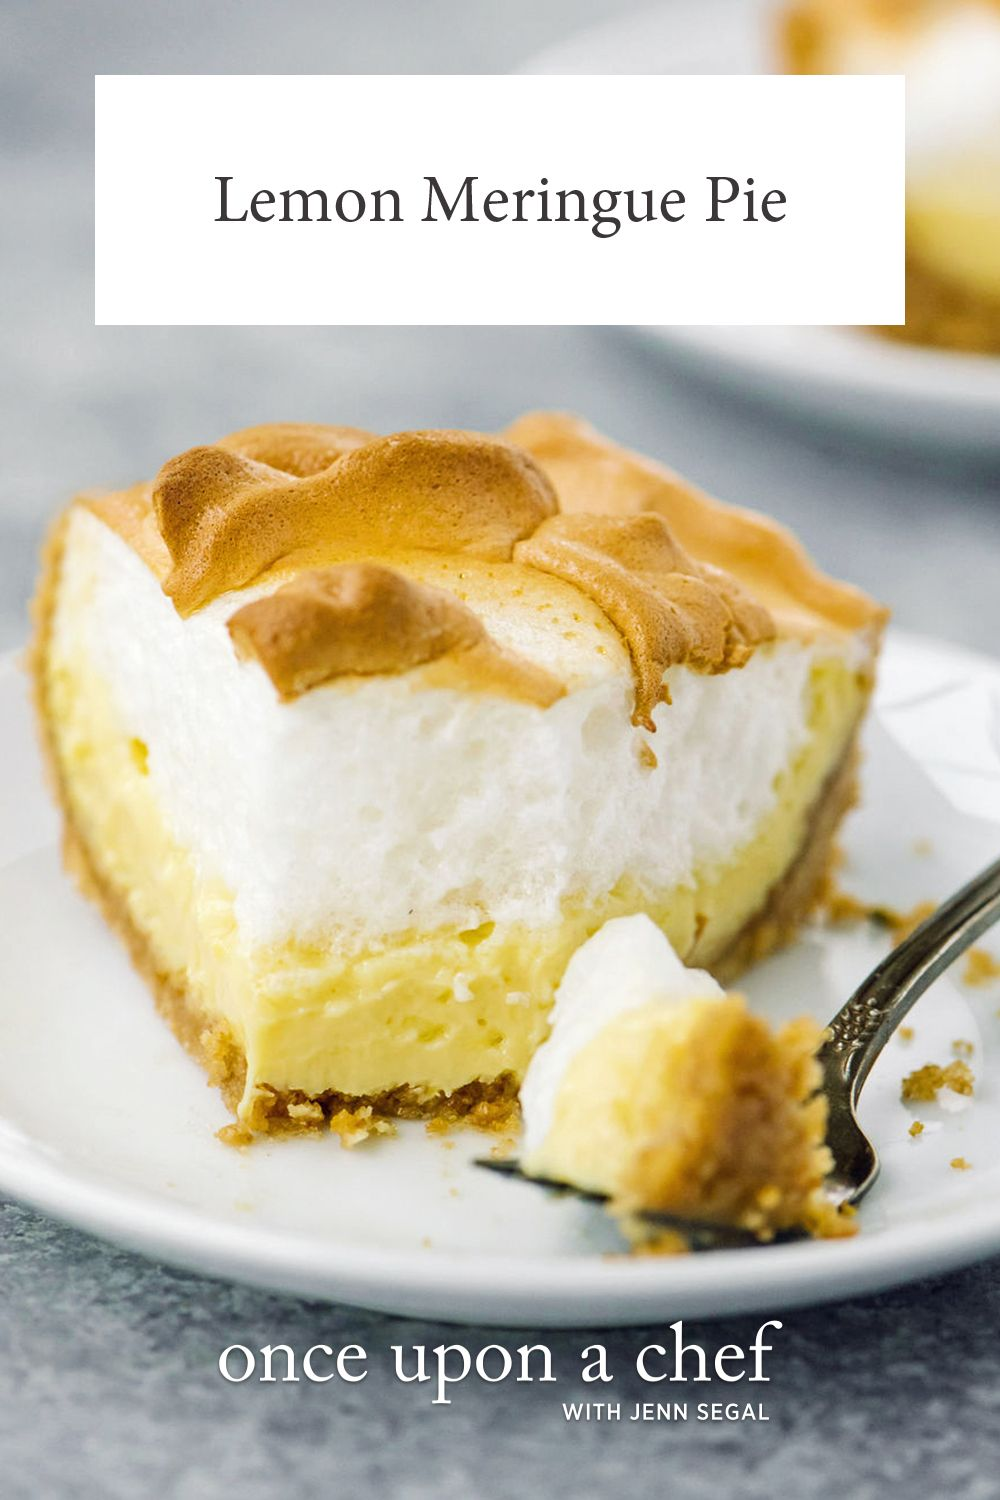 Lemon Meringue Pie Once Upon A Chef Recipe In 2020 Lemon Meringue Pie Easy Meringue Pie Recipes Lemon Desserts